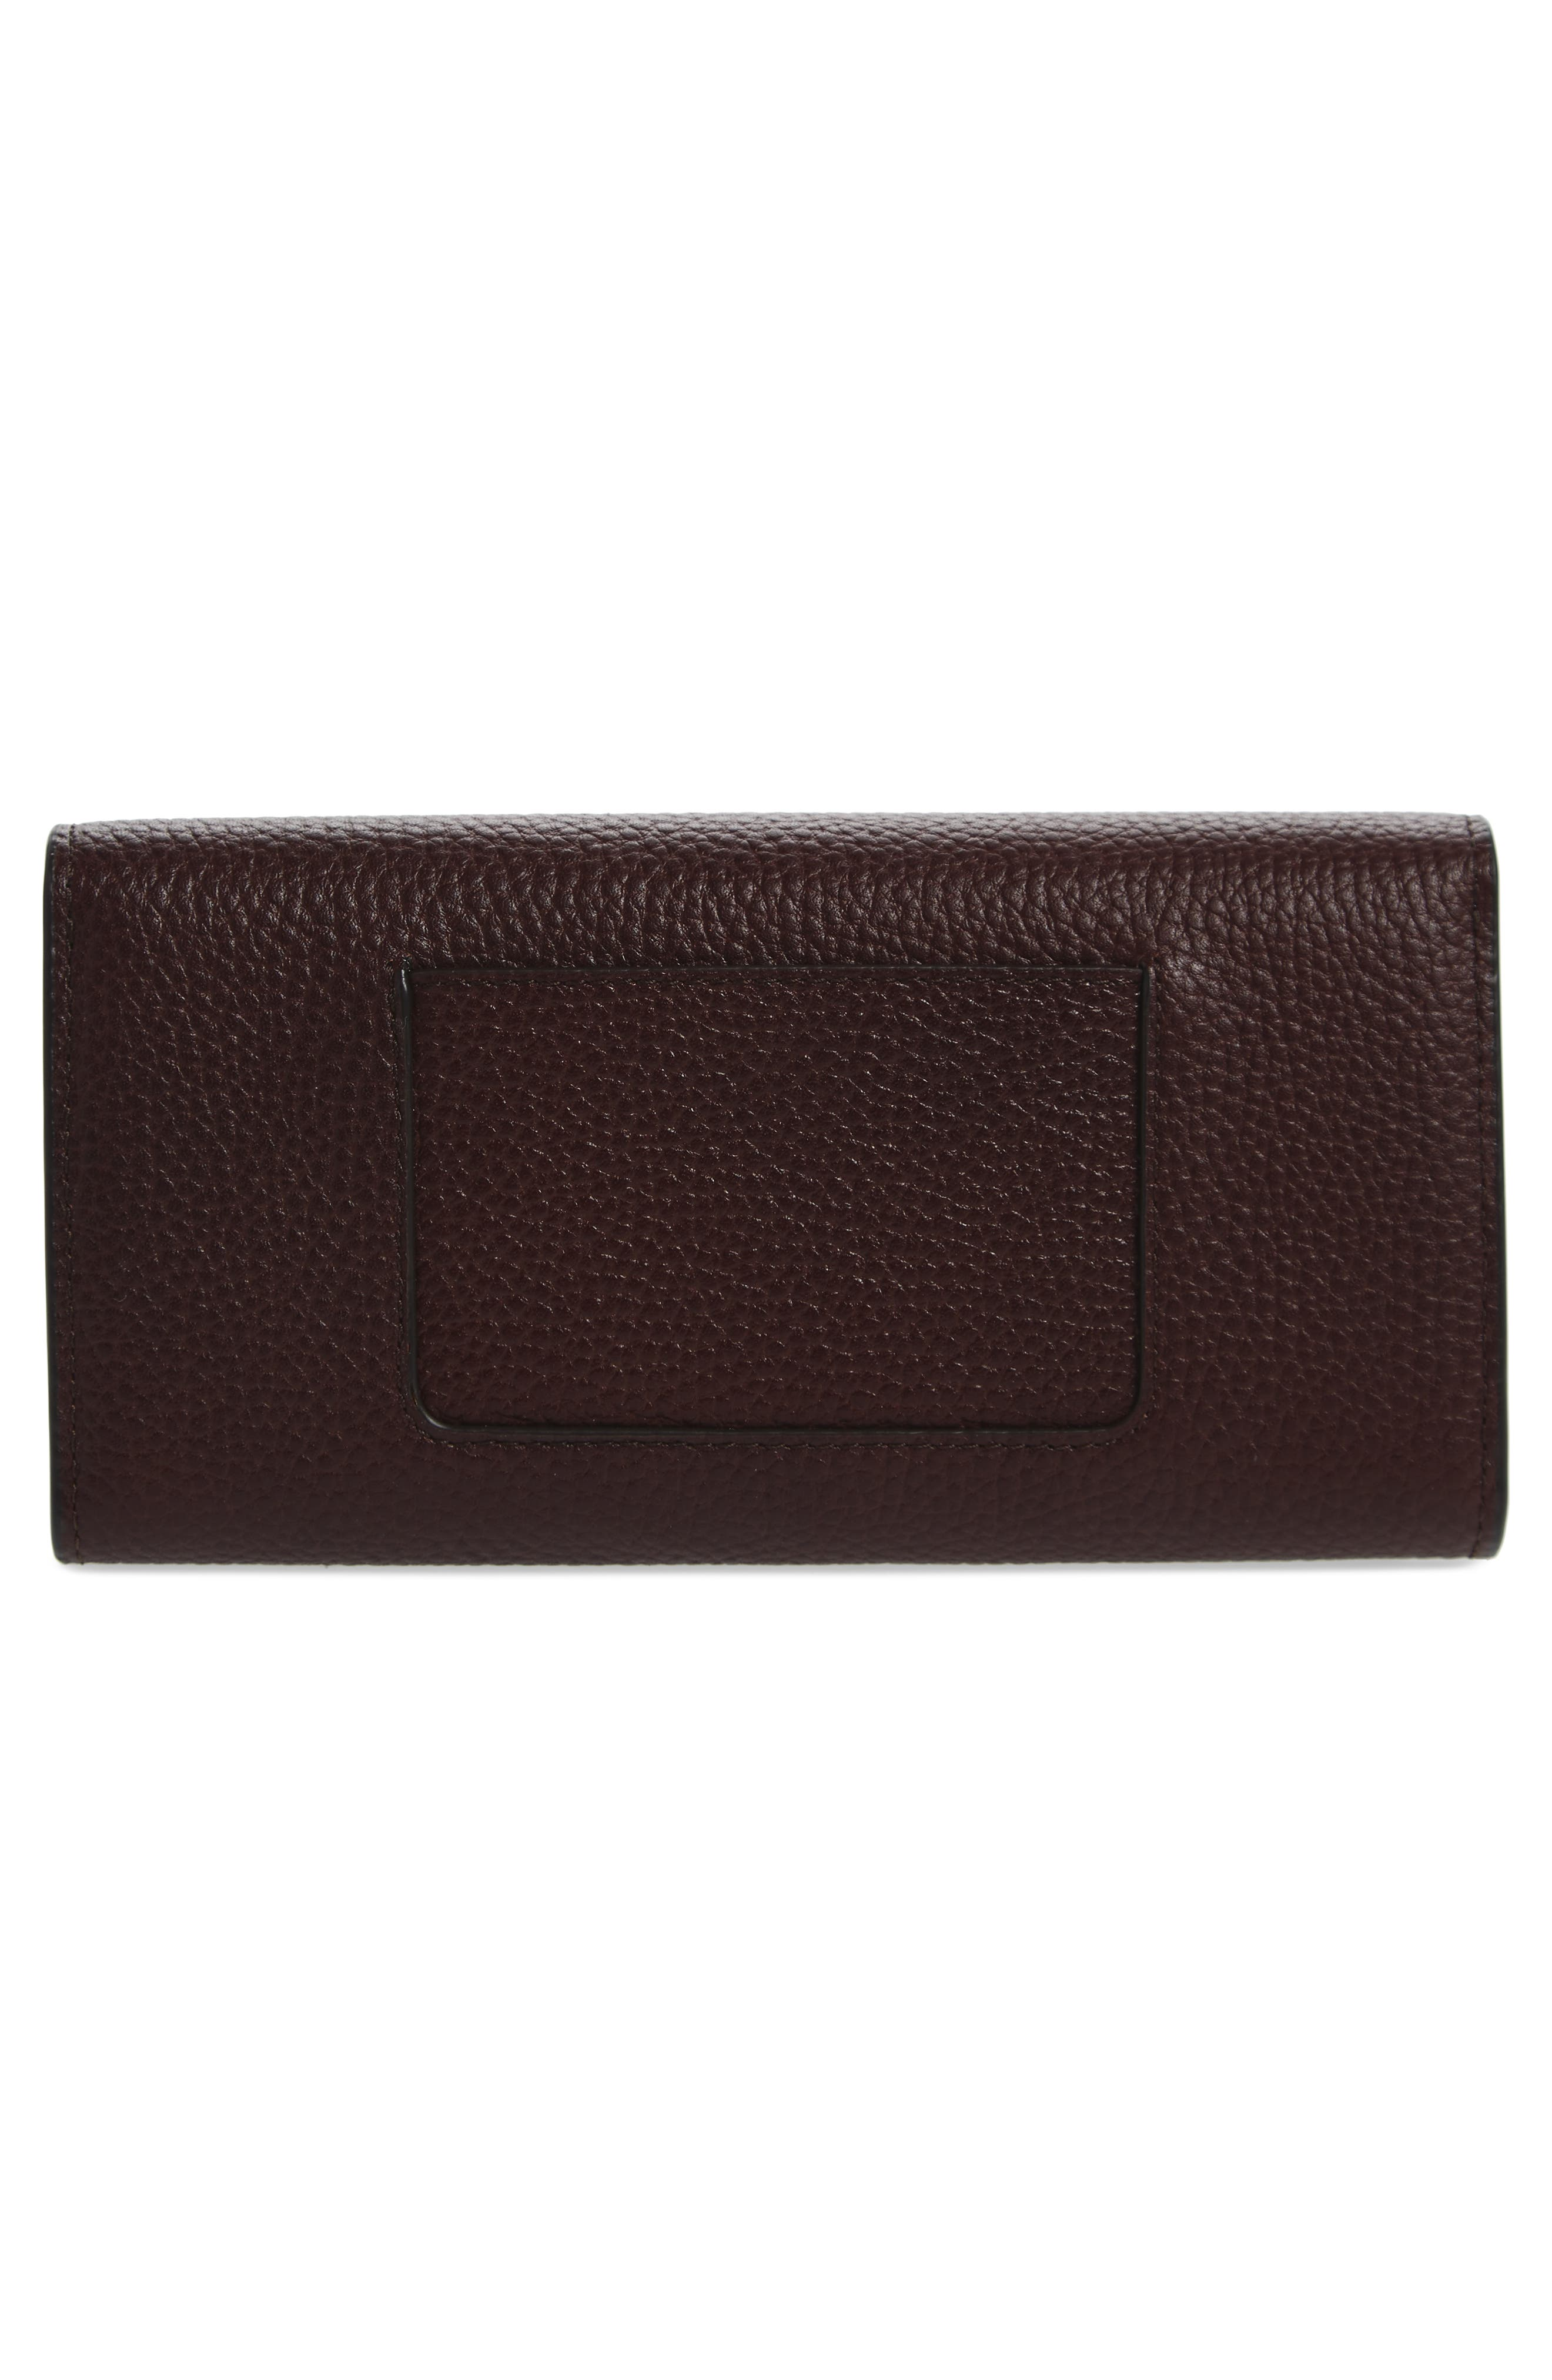 Darley Continental Calfskin Leather Wallet,                             Alternate thumbnail 4, color,                             Oxblood